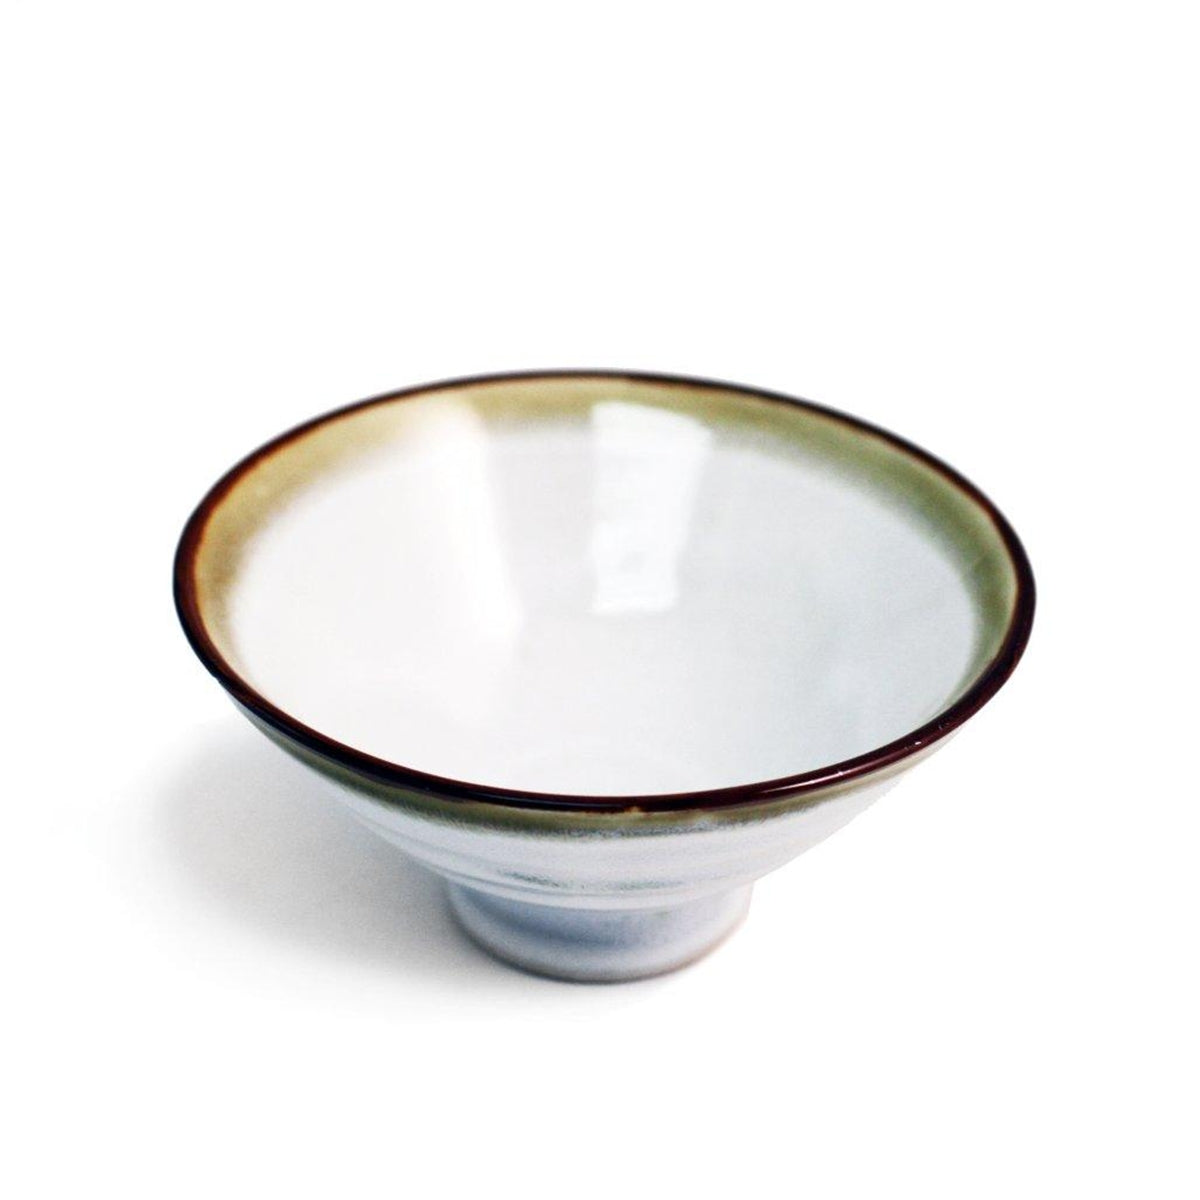 "White Rice Bowl with Brown Trim 9 fl oz / 4.96"" dia"